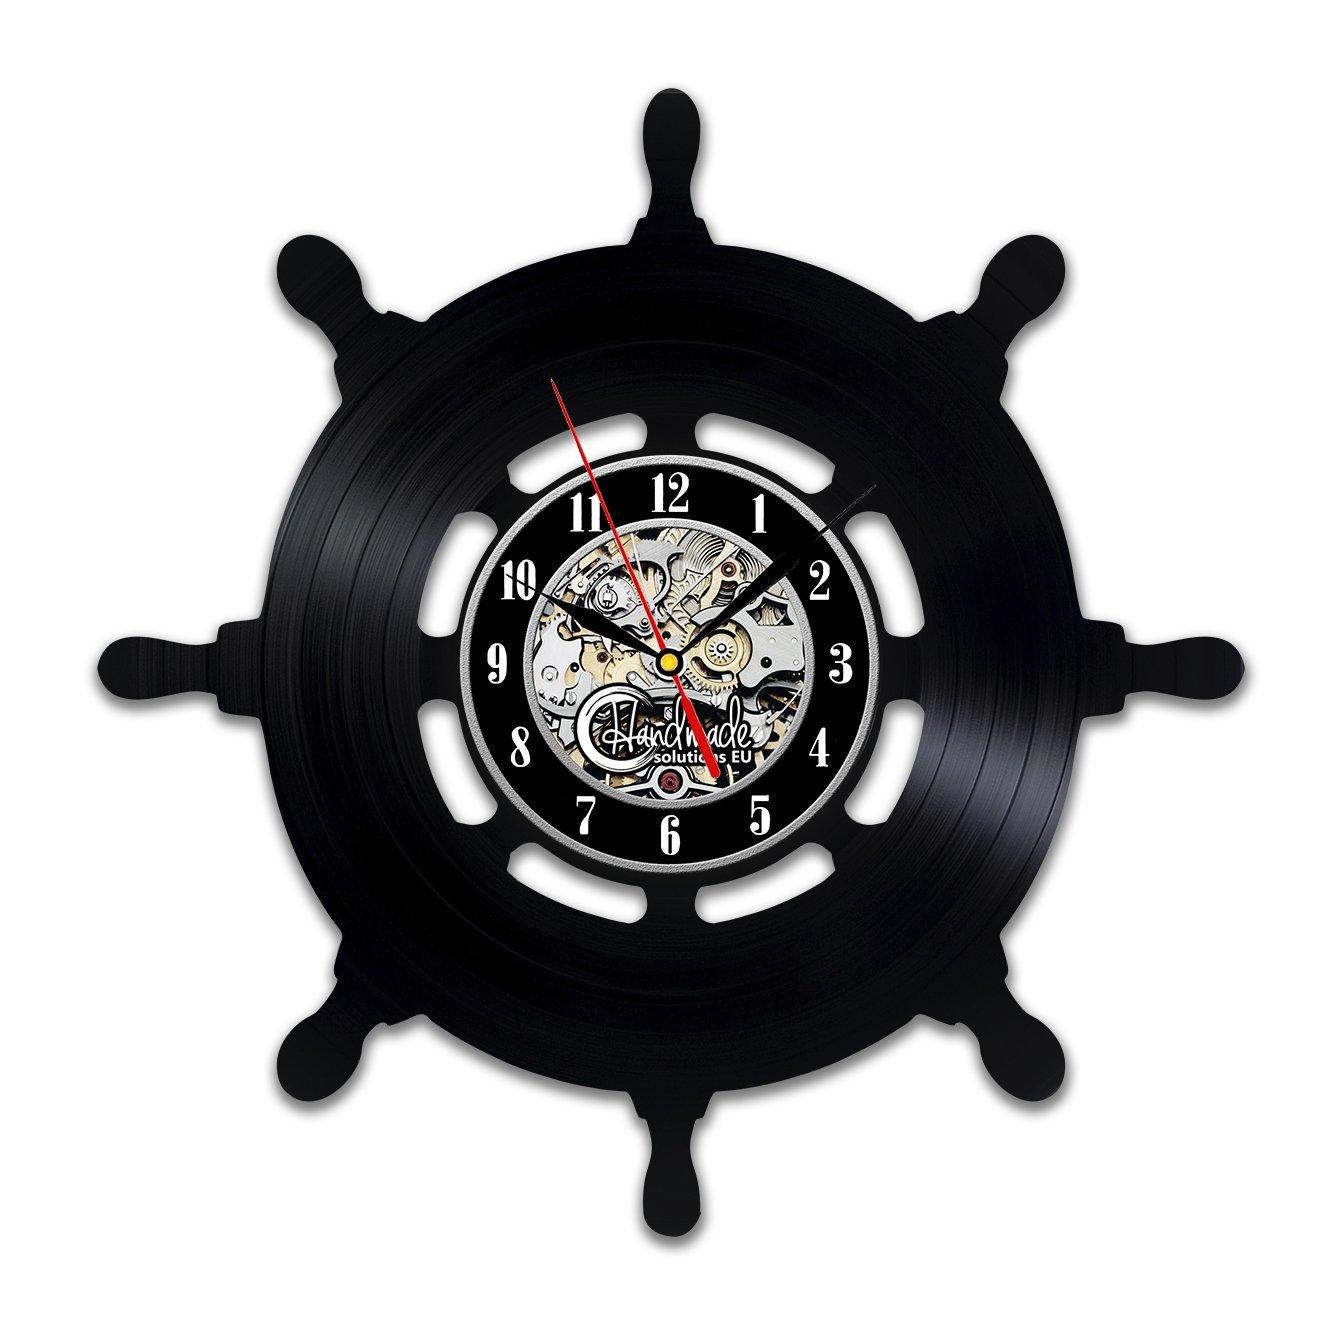 Diy Gift For Ship Navigation Wheel Wall Clock Art Presents Gift For